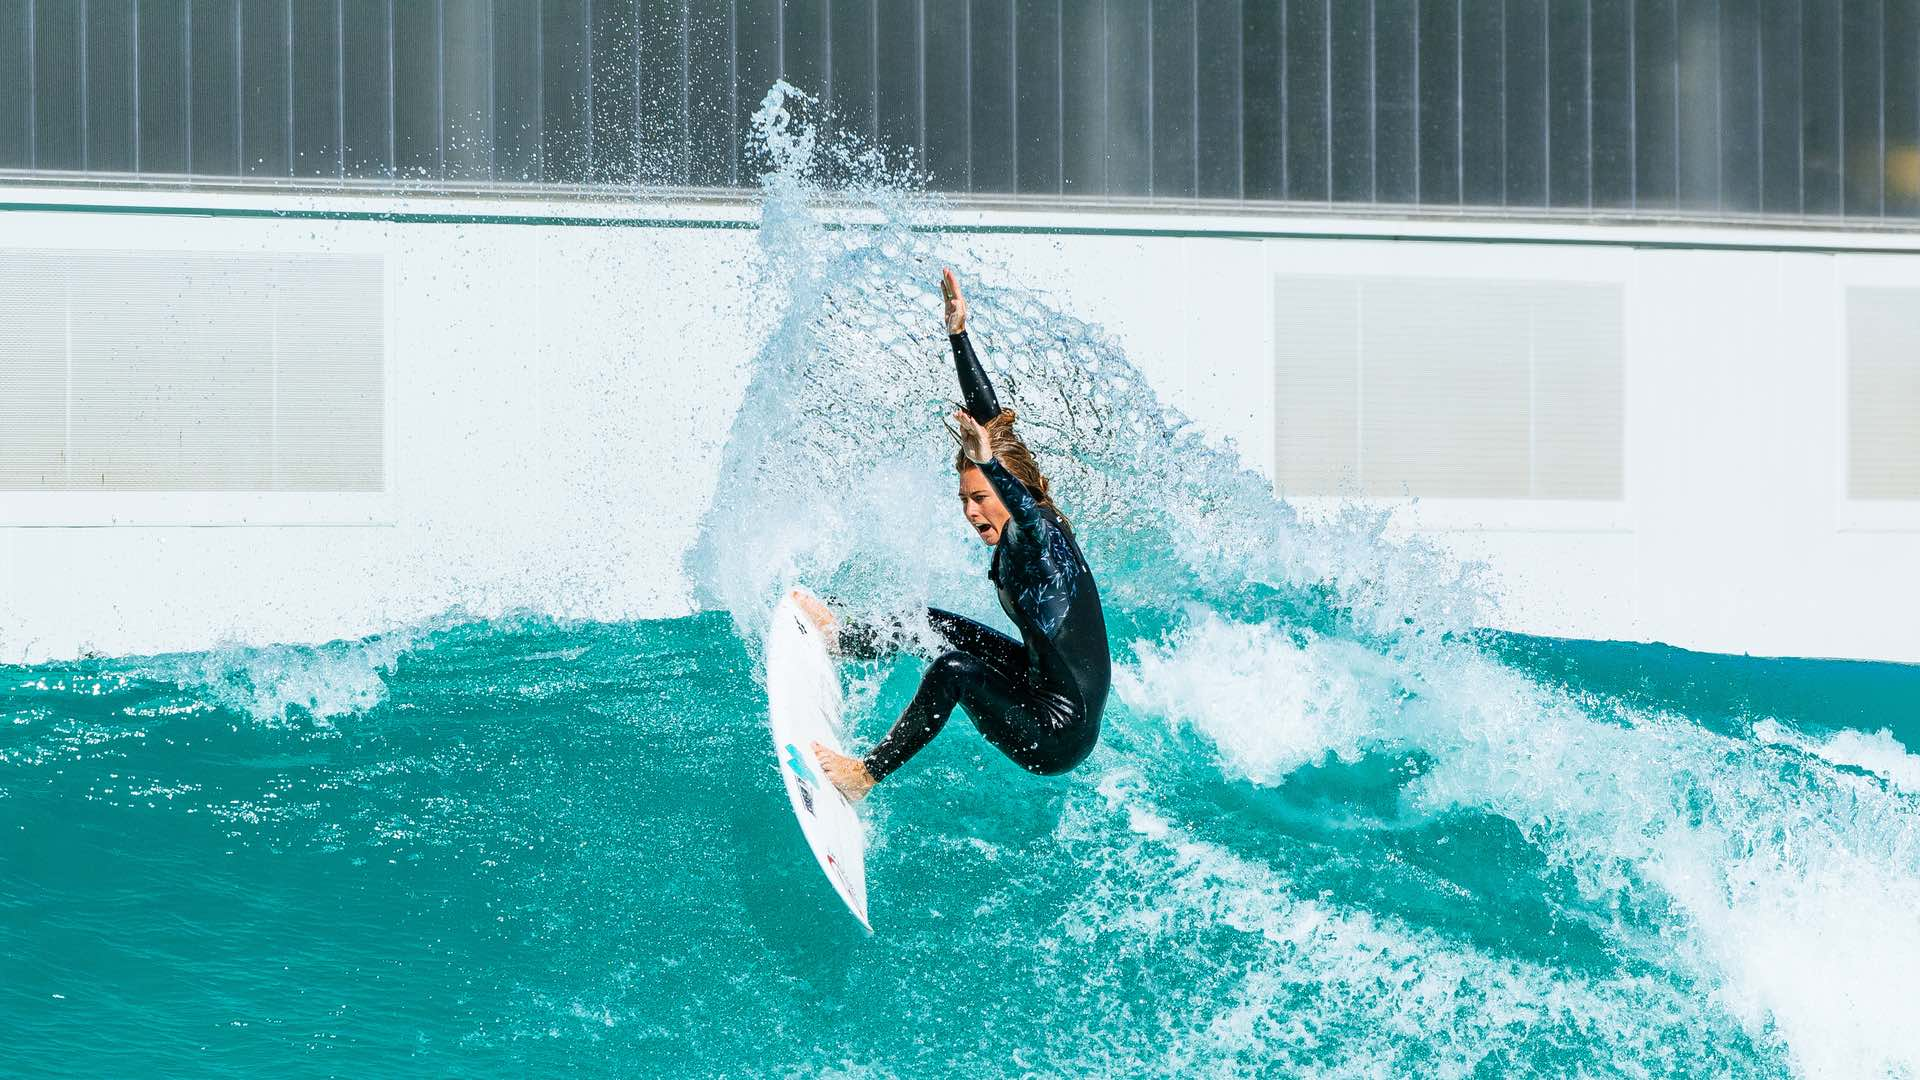 Australia's First Surf Park Will Finally Start Pumping Out Waves This Easter